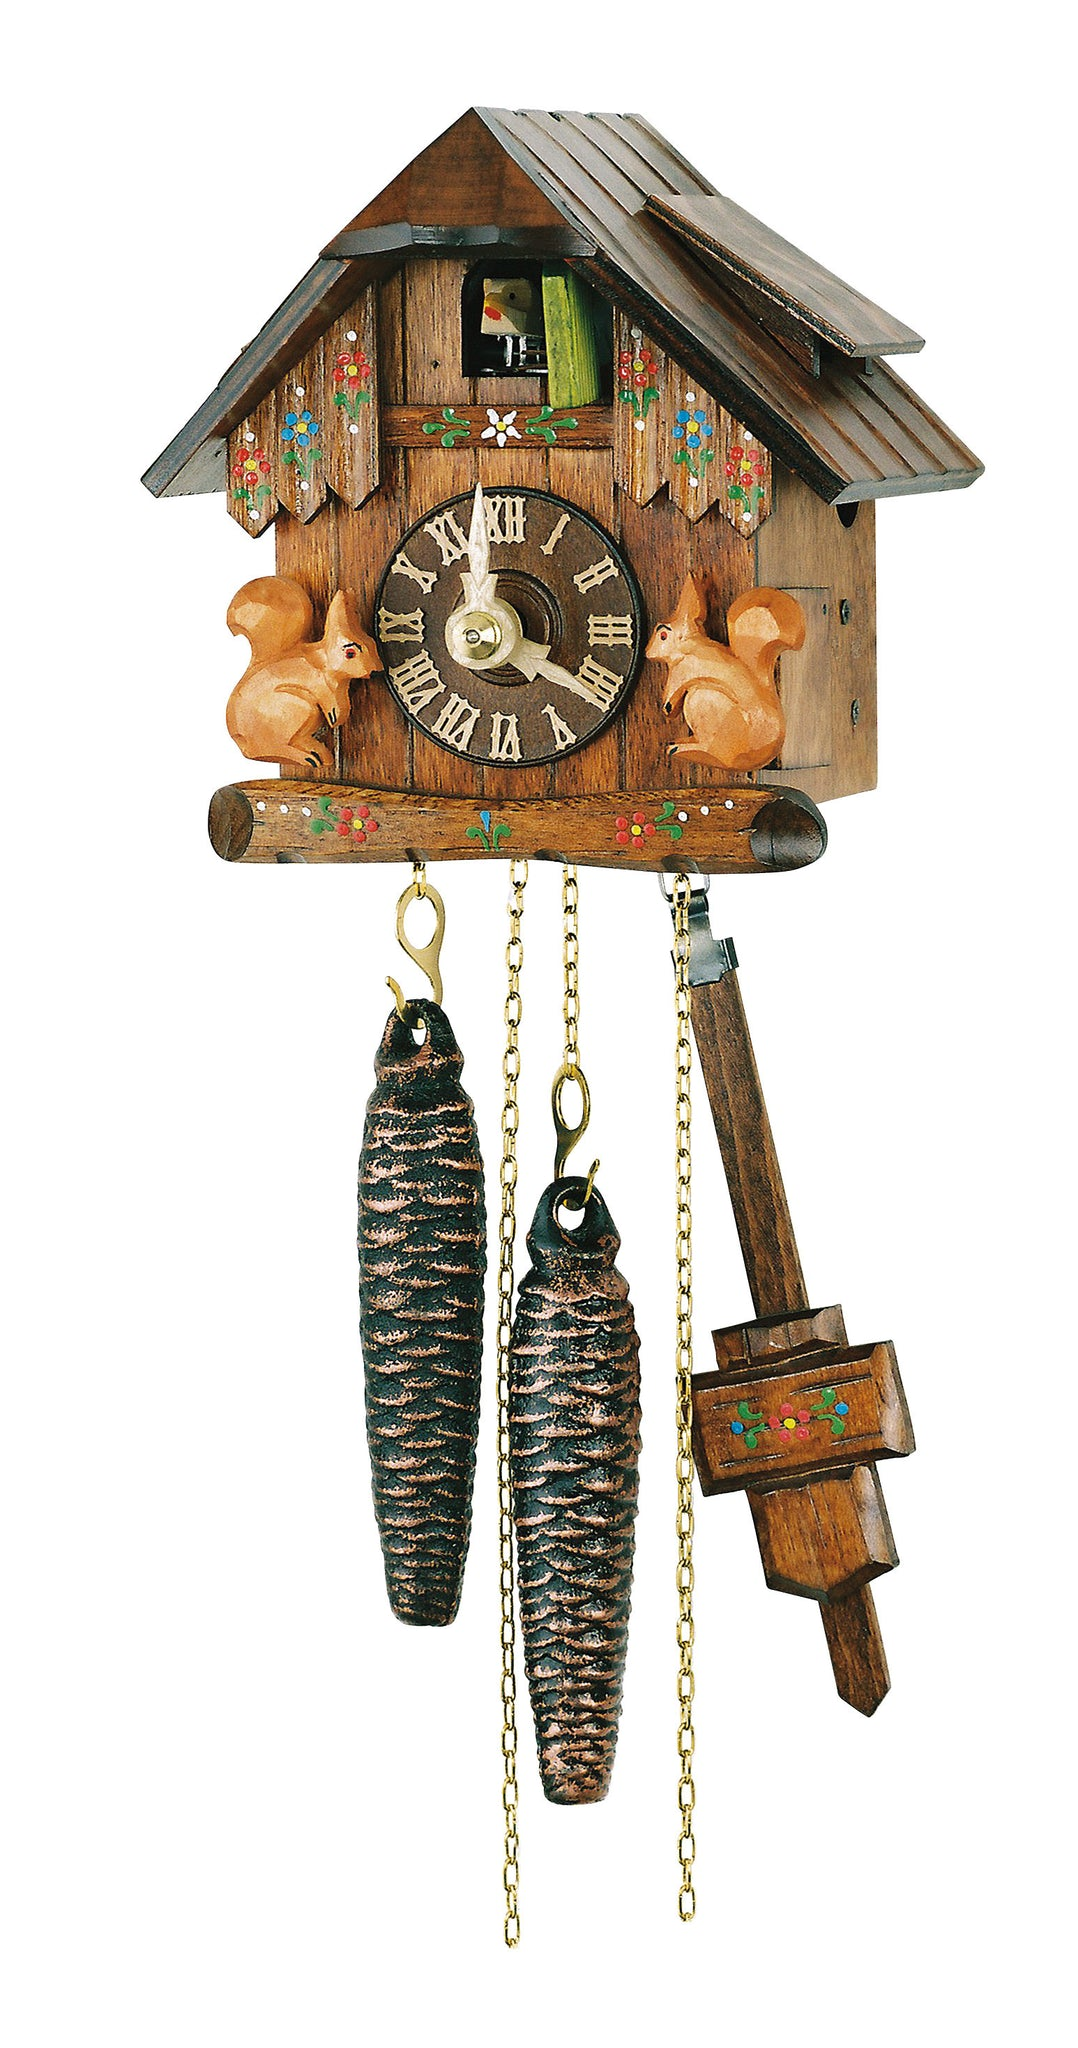 Cuckoo Clock Little Black Forest House with Squirrels 1-Day Movement - Cuckoo Clock Meister